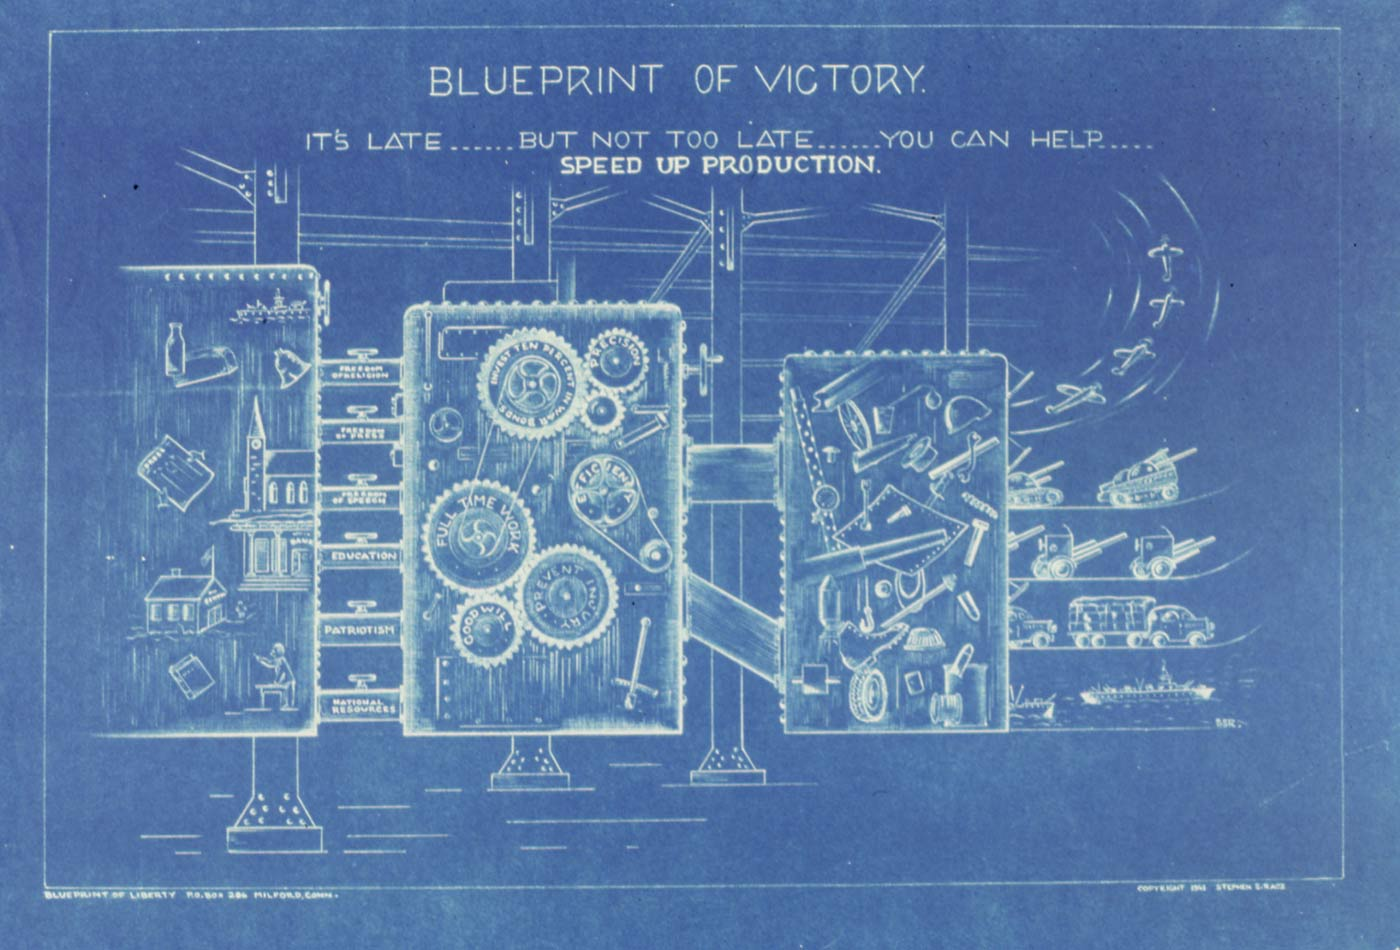 Blueprint of Victory.